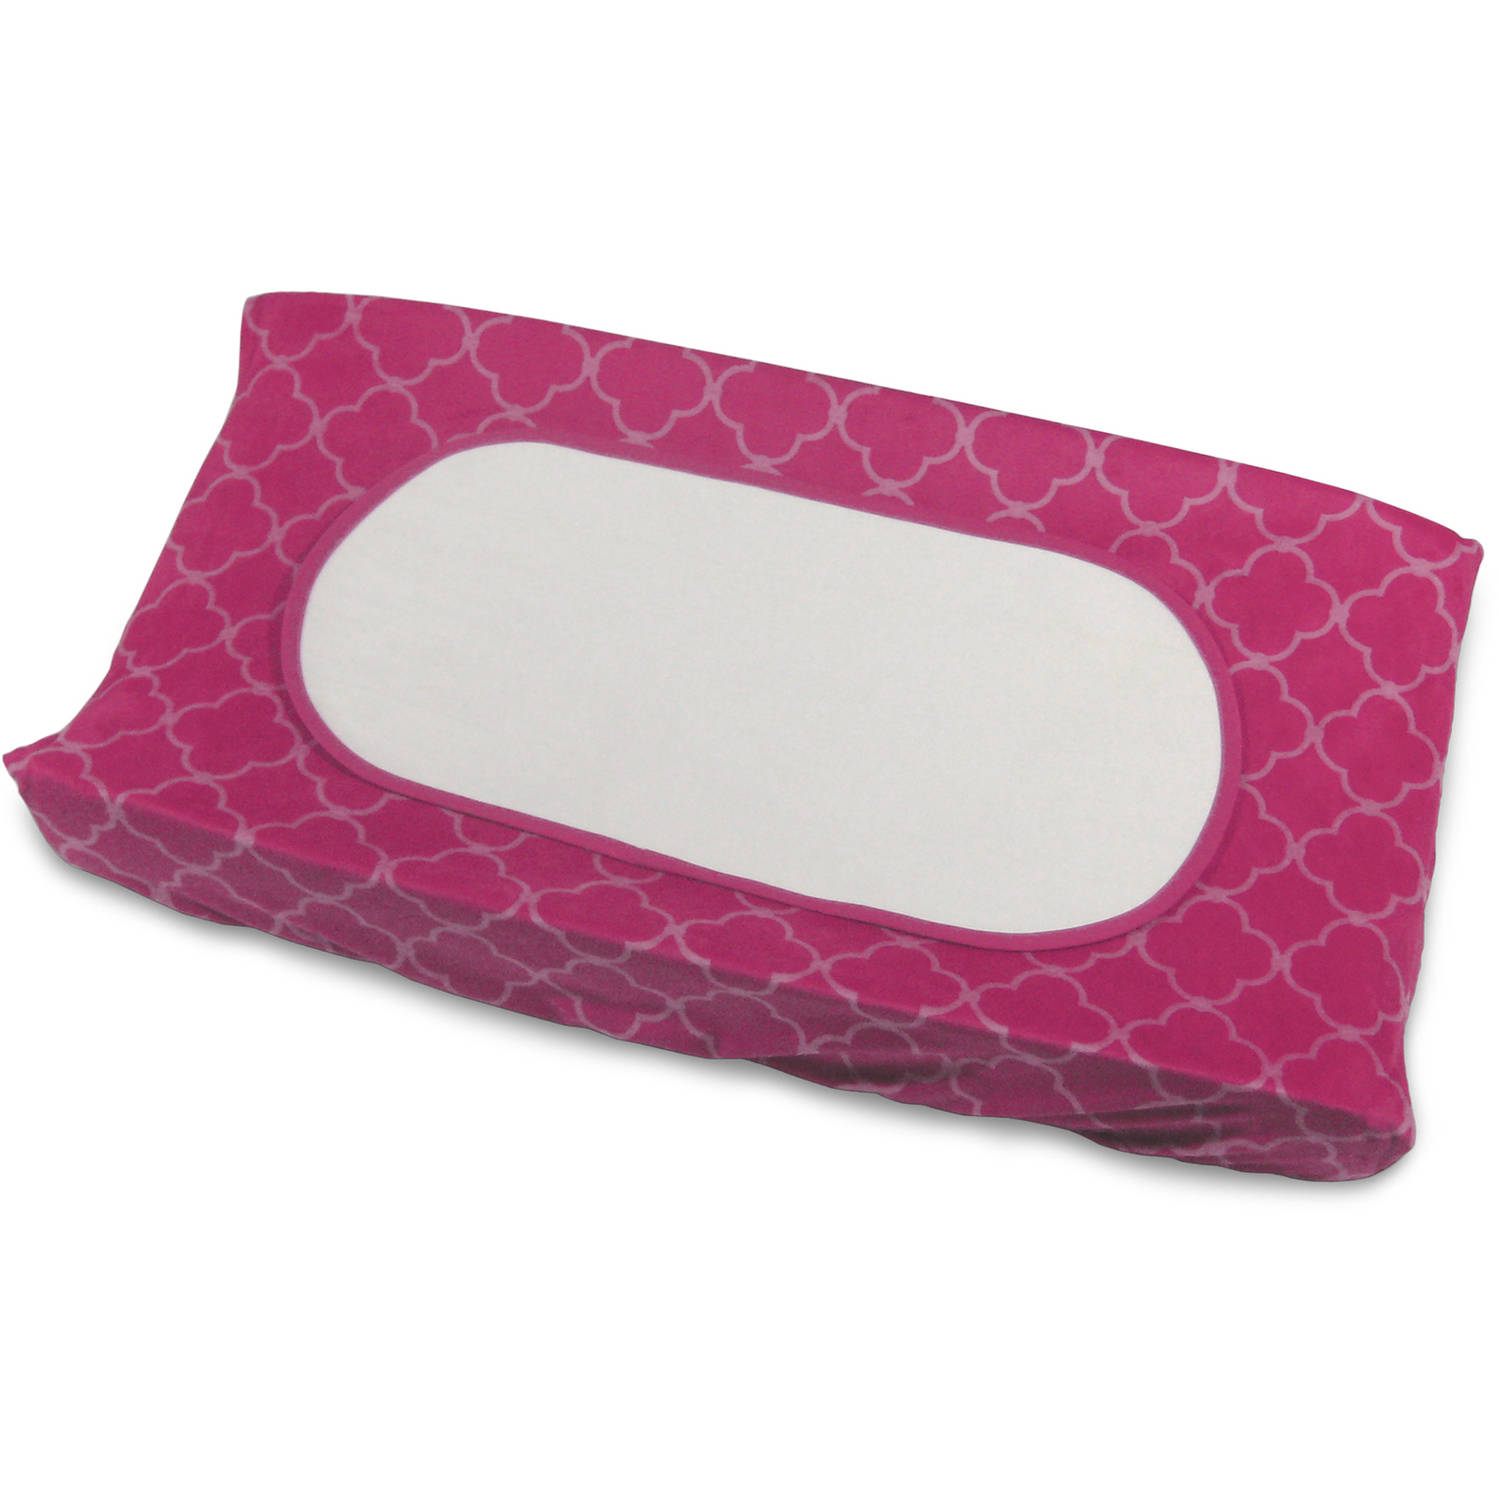 Boppy Changing Pad Set, Raspberry Trellis